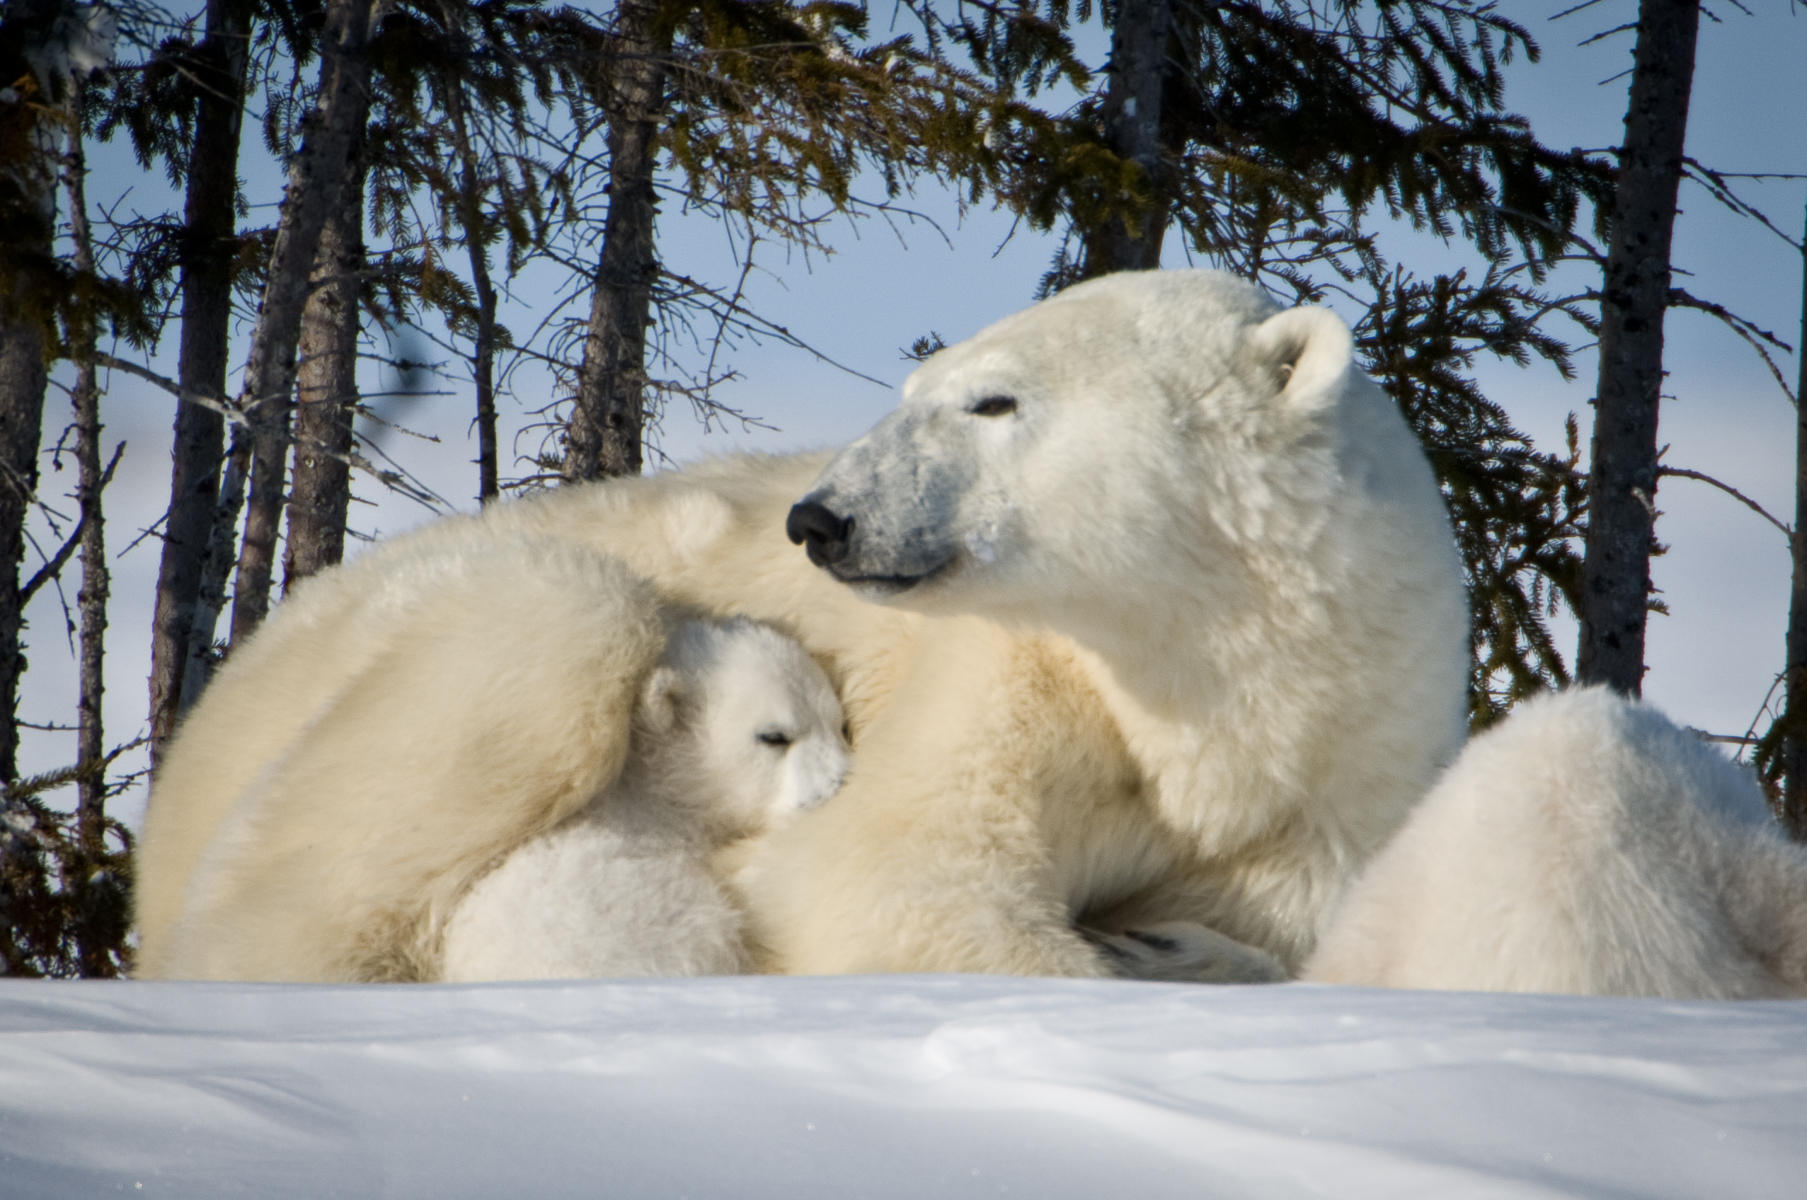 Protection : bears : TIMOTHY FLOYD PHOTOGRAPHER, NATURE PHOTOGRAPHY, PHOTO ESSAYS, PHOTOJOURNALISM